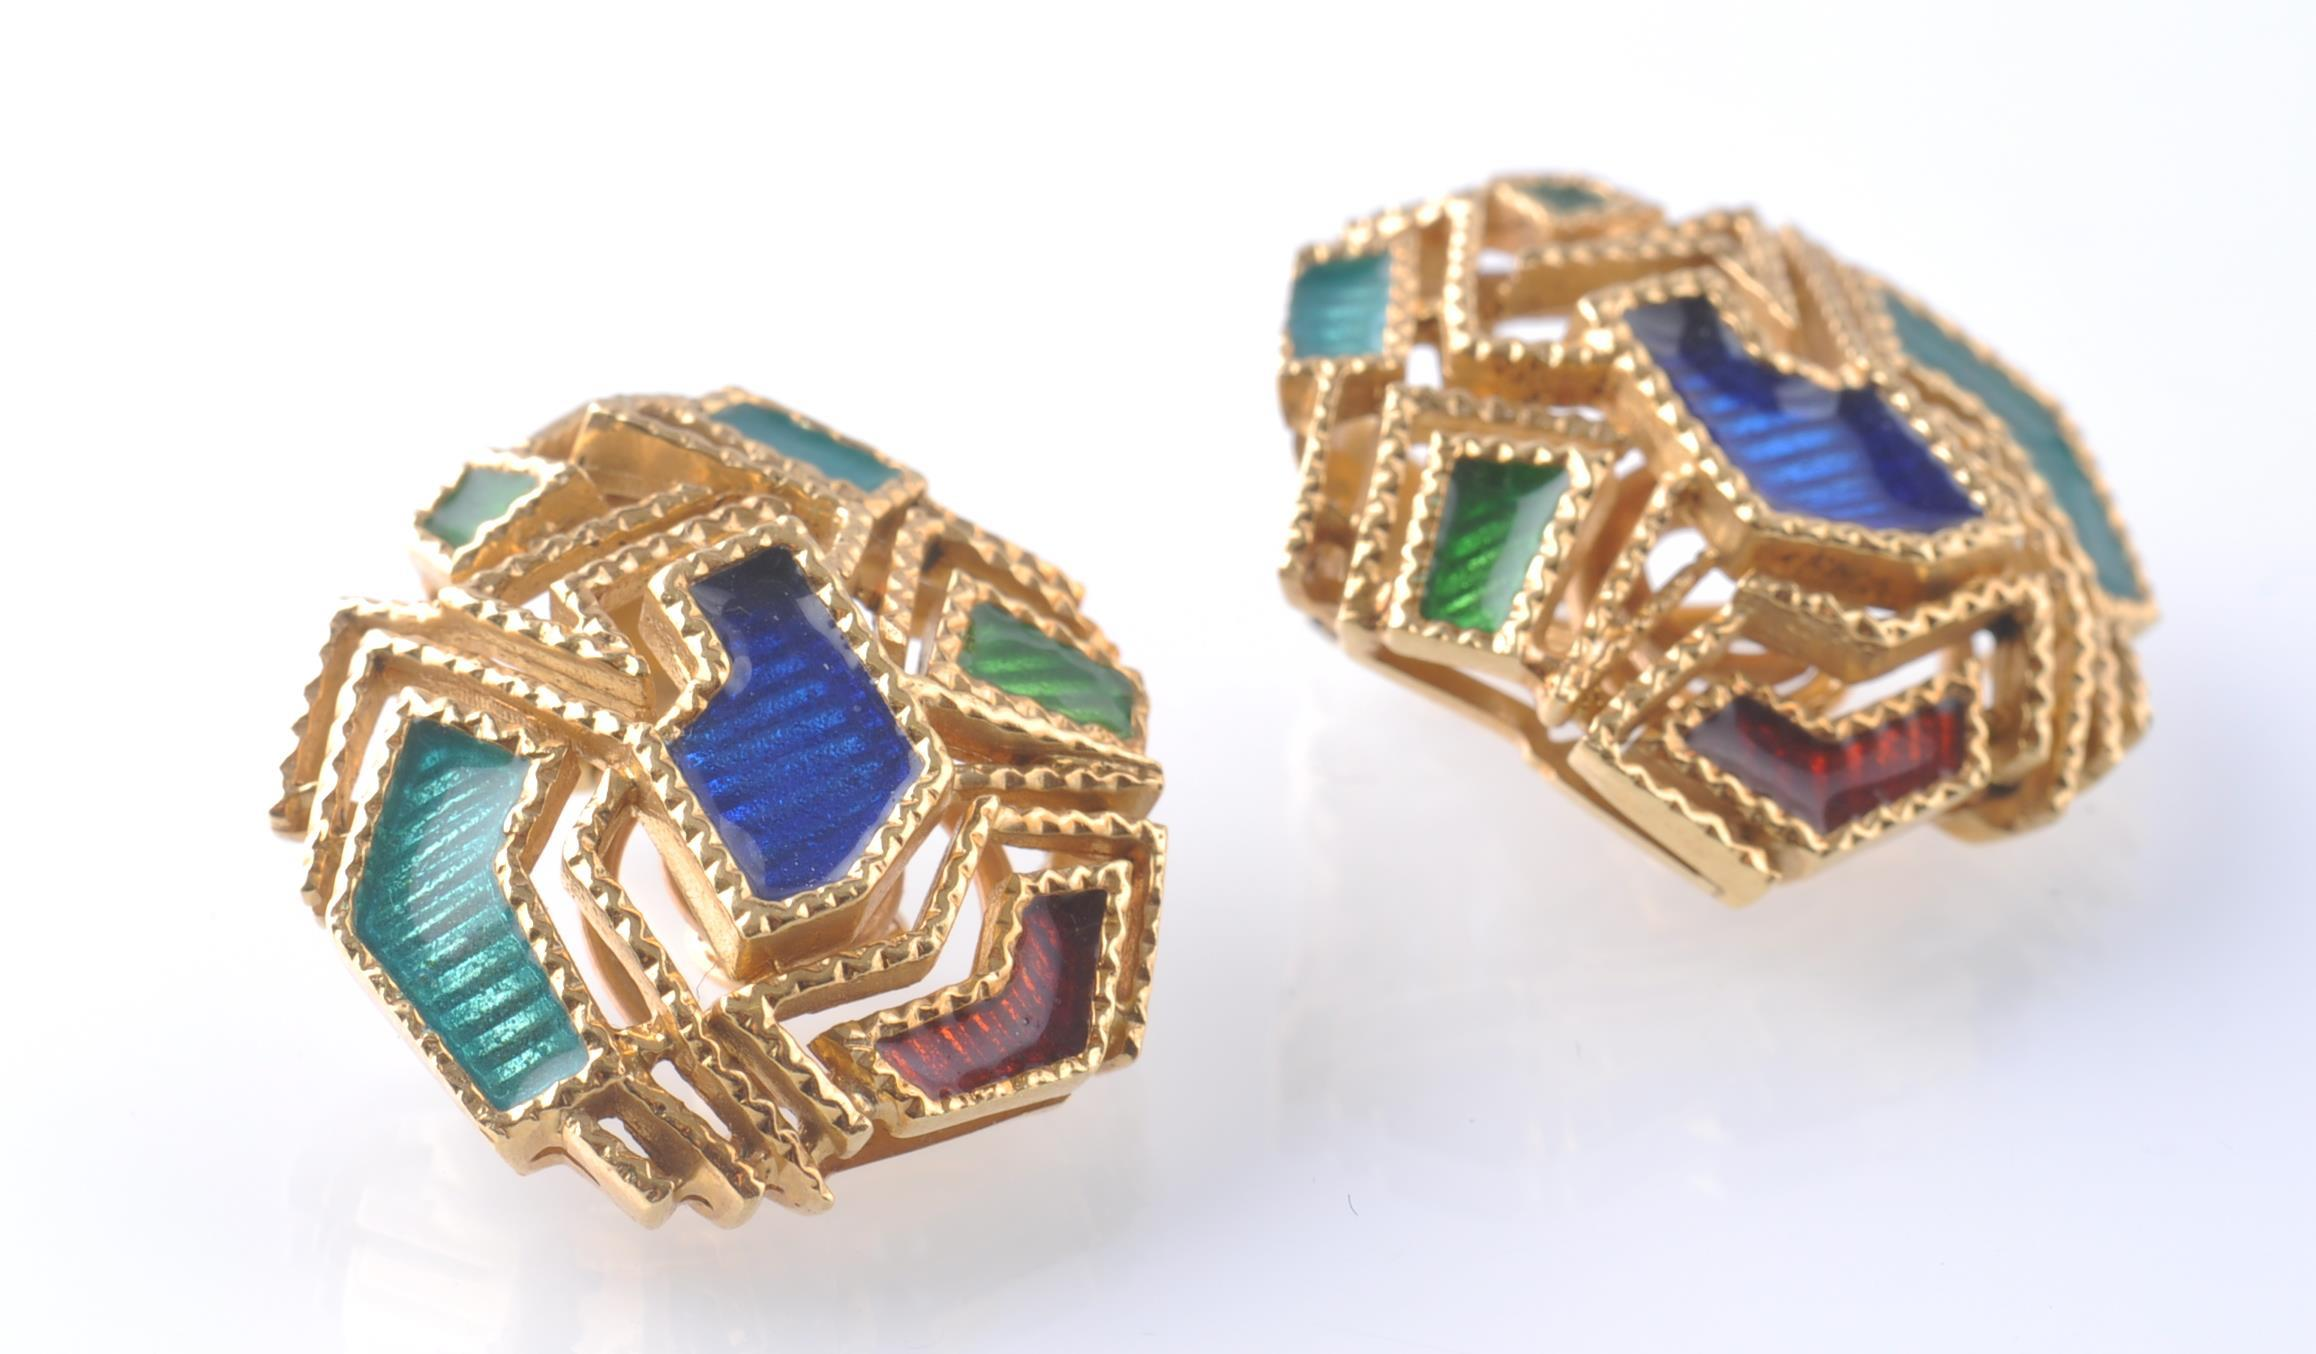 A PAIR OF 18CT GOLD AND ENAMEL EAR CLIPS - Image 3 of 5